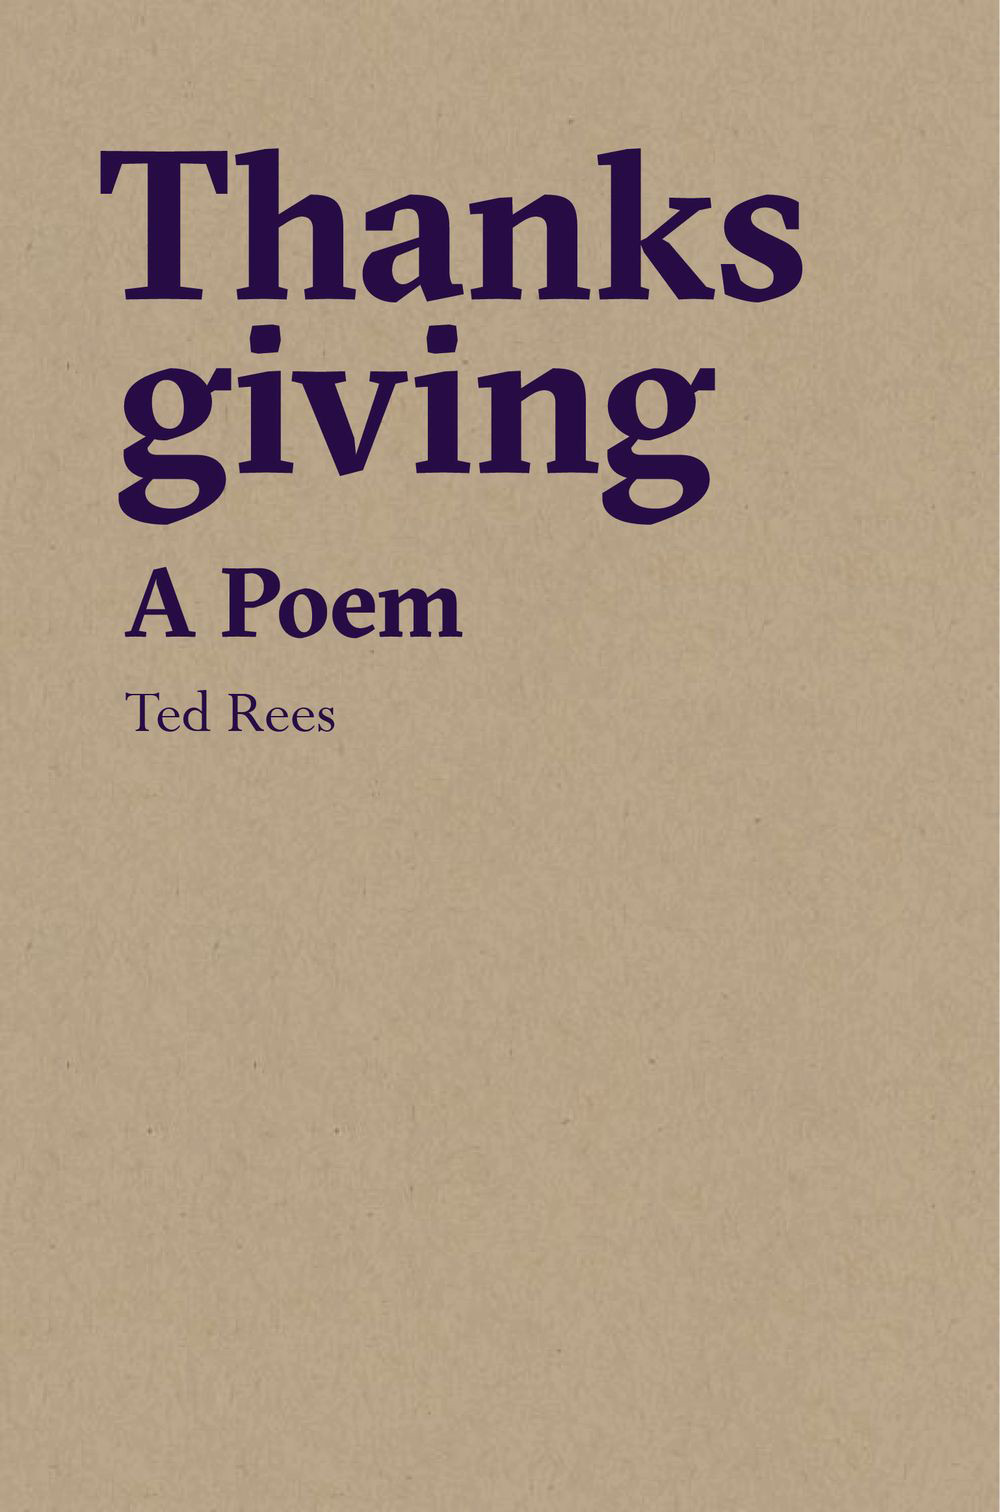 Thanksgiving: A Poem